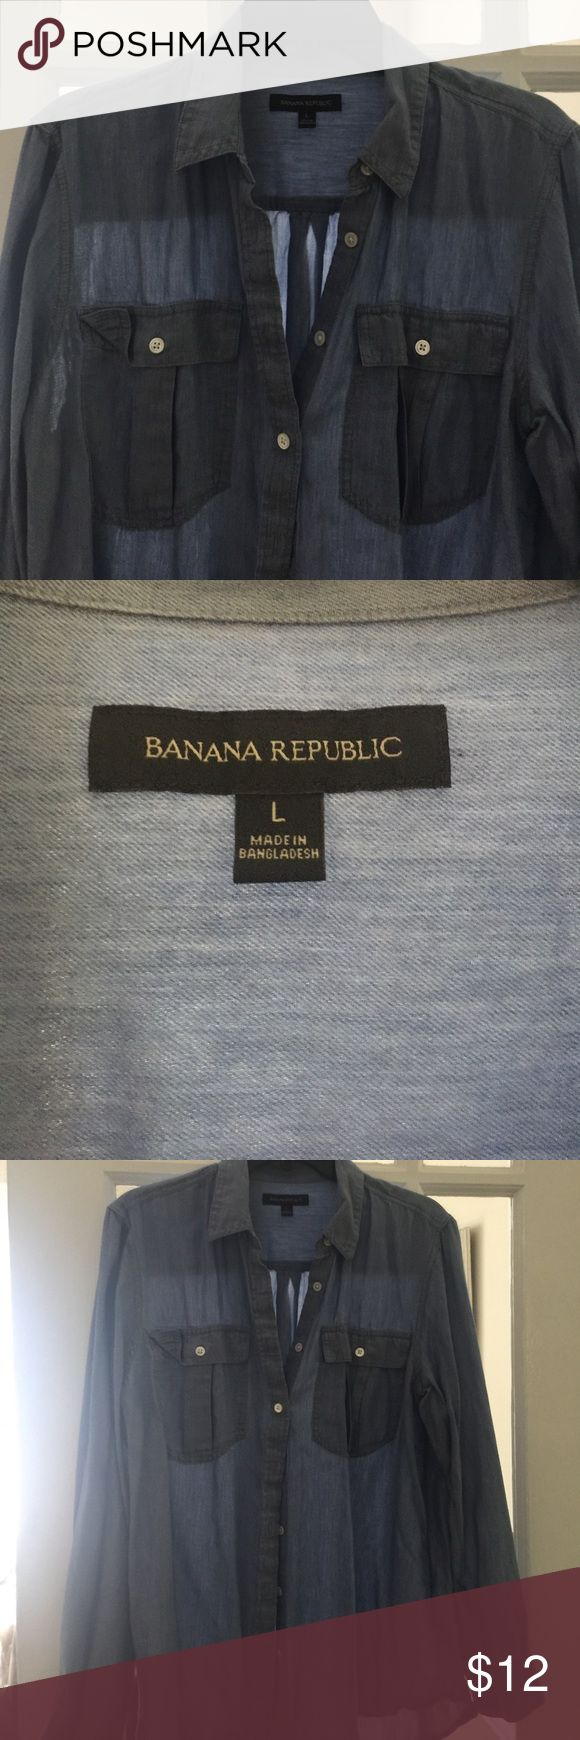 Denim shirt Banana Republic Super soft and light denim shirt from Banana Republic. It breaths so could be a summer and fall denim. Xoxox Banana Republic Tops Button Down Shirts